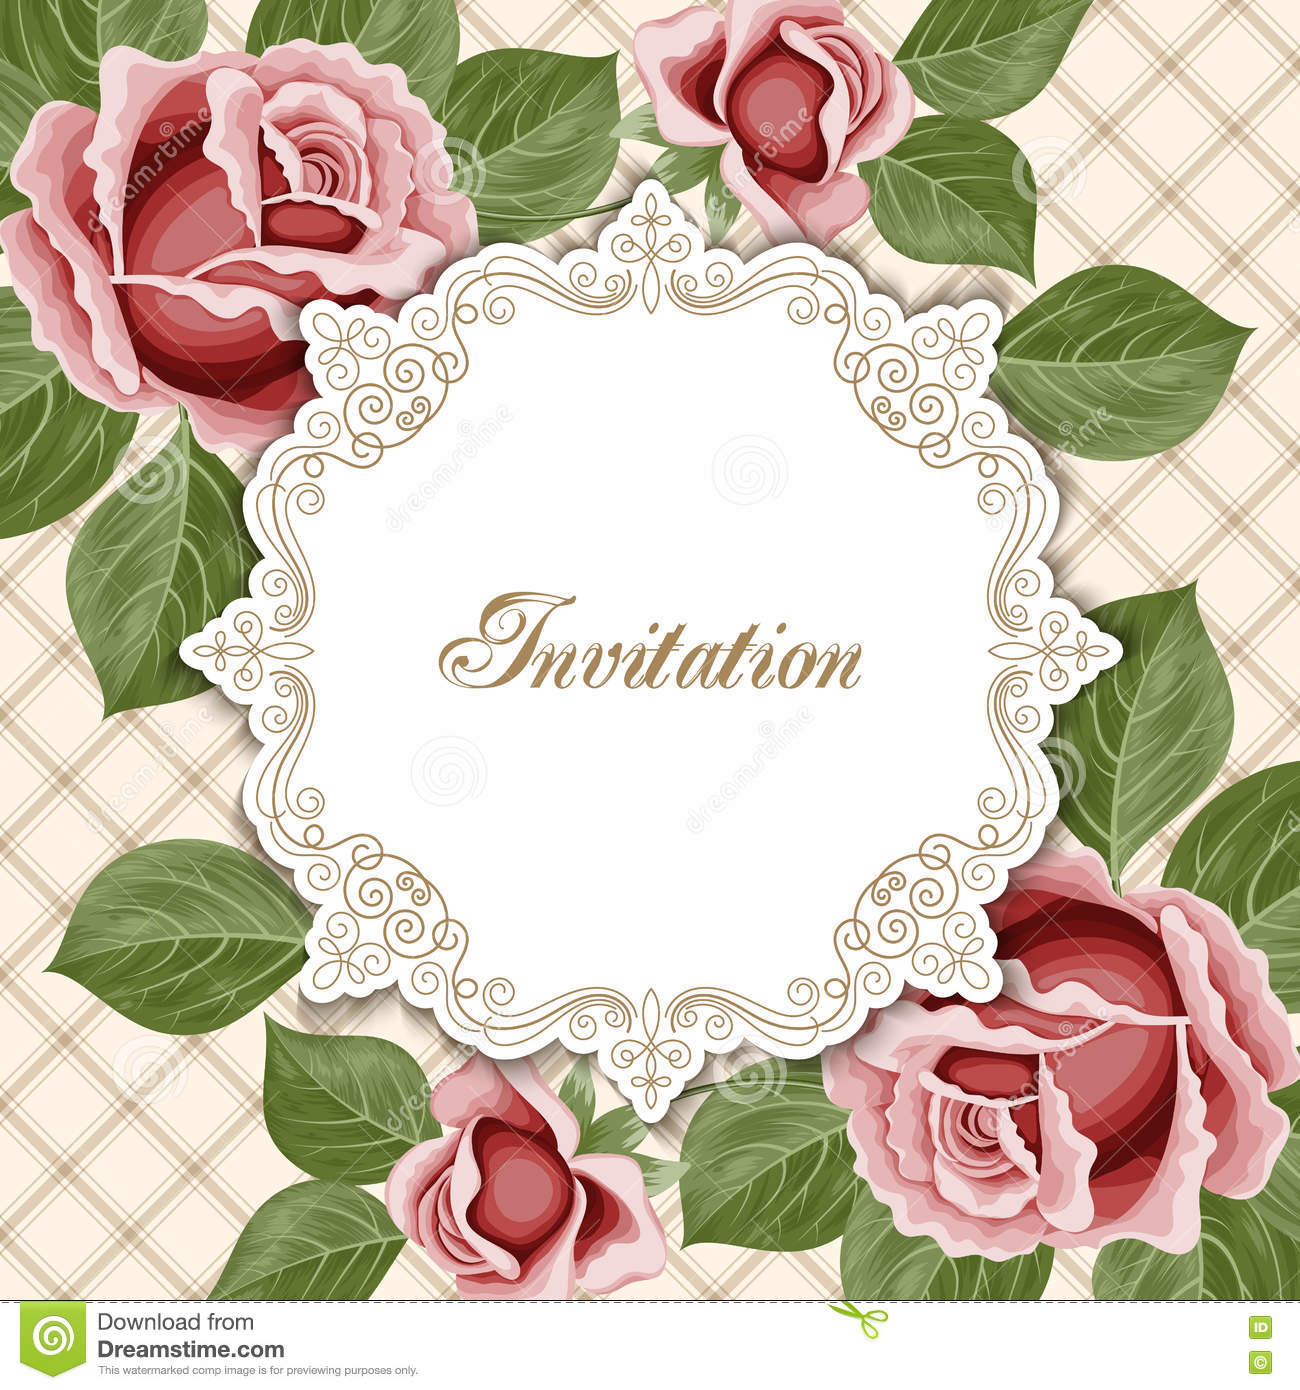 Vintage Floral Invitation Template Stock Vector Illustration Of for size 1300 X 1390